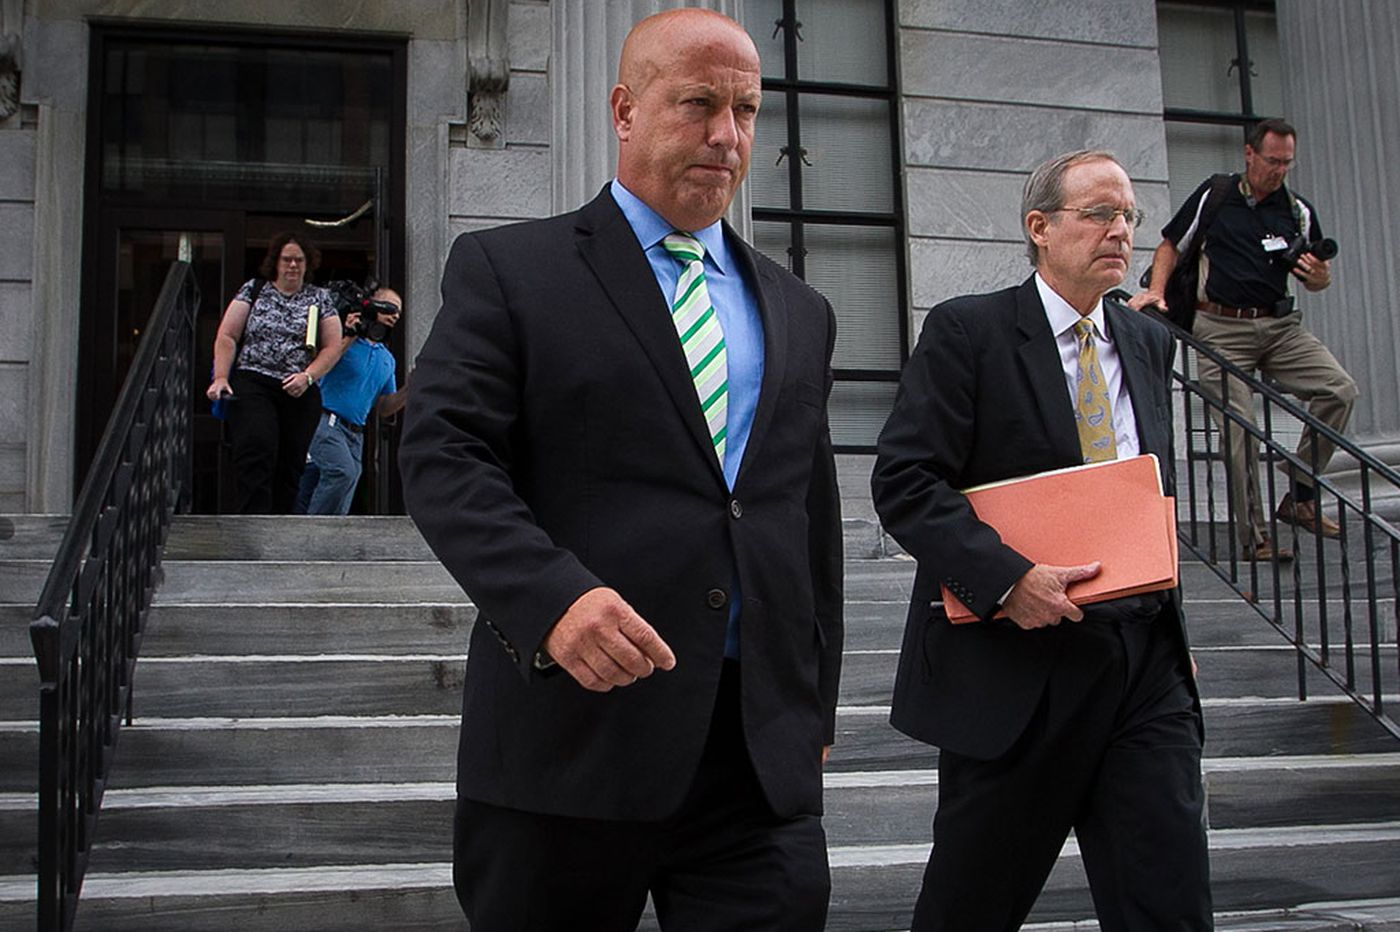 Despite criminal charges, top Kane aide to remain on job